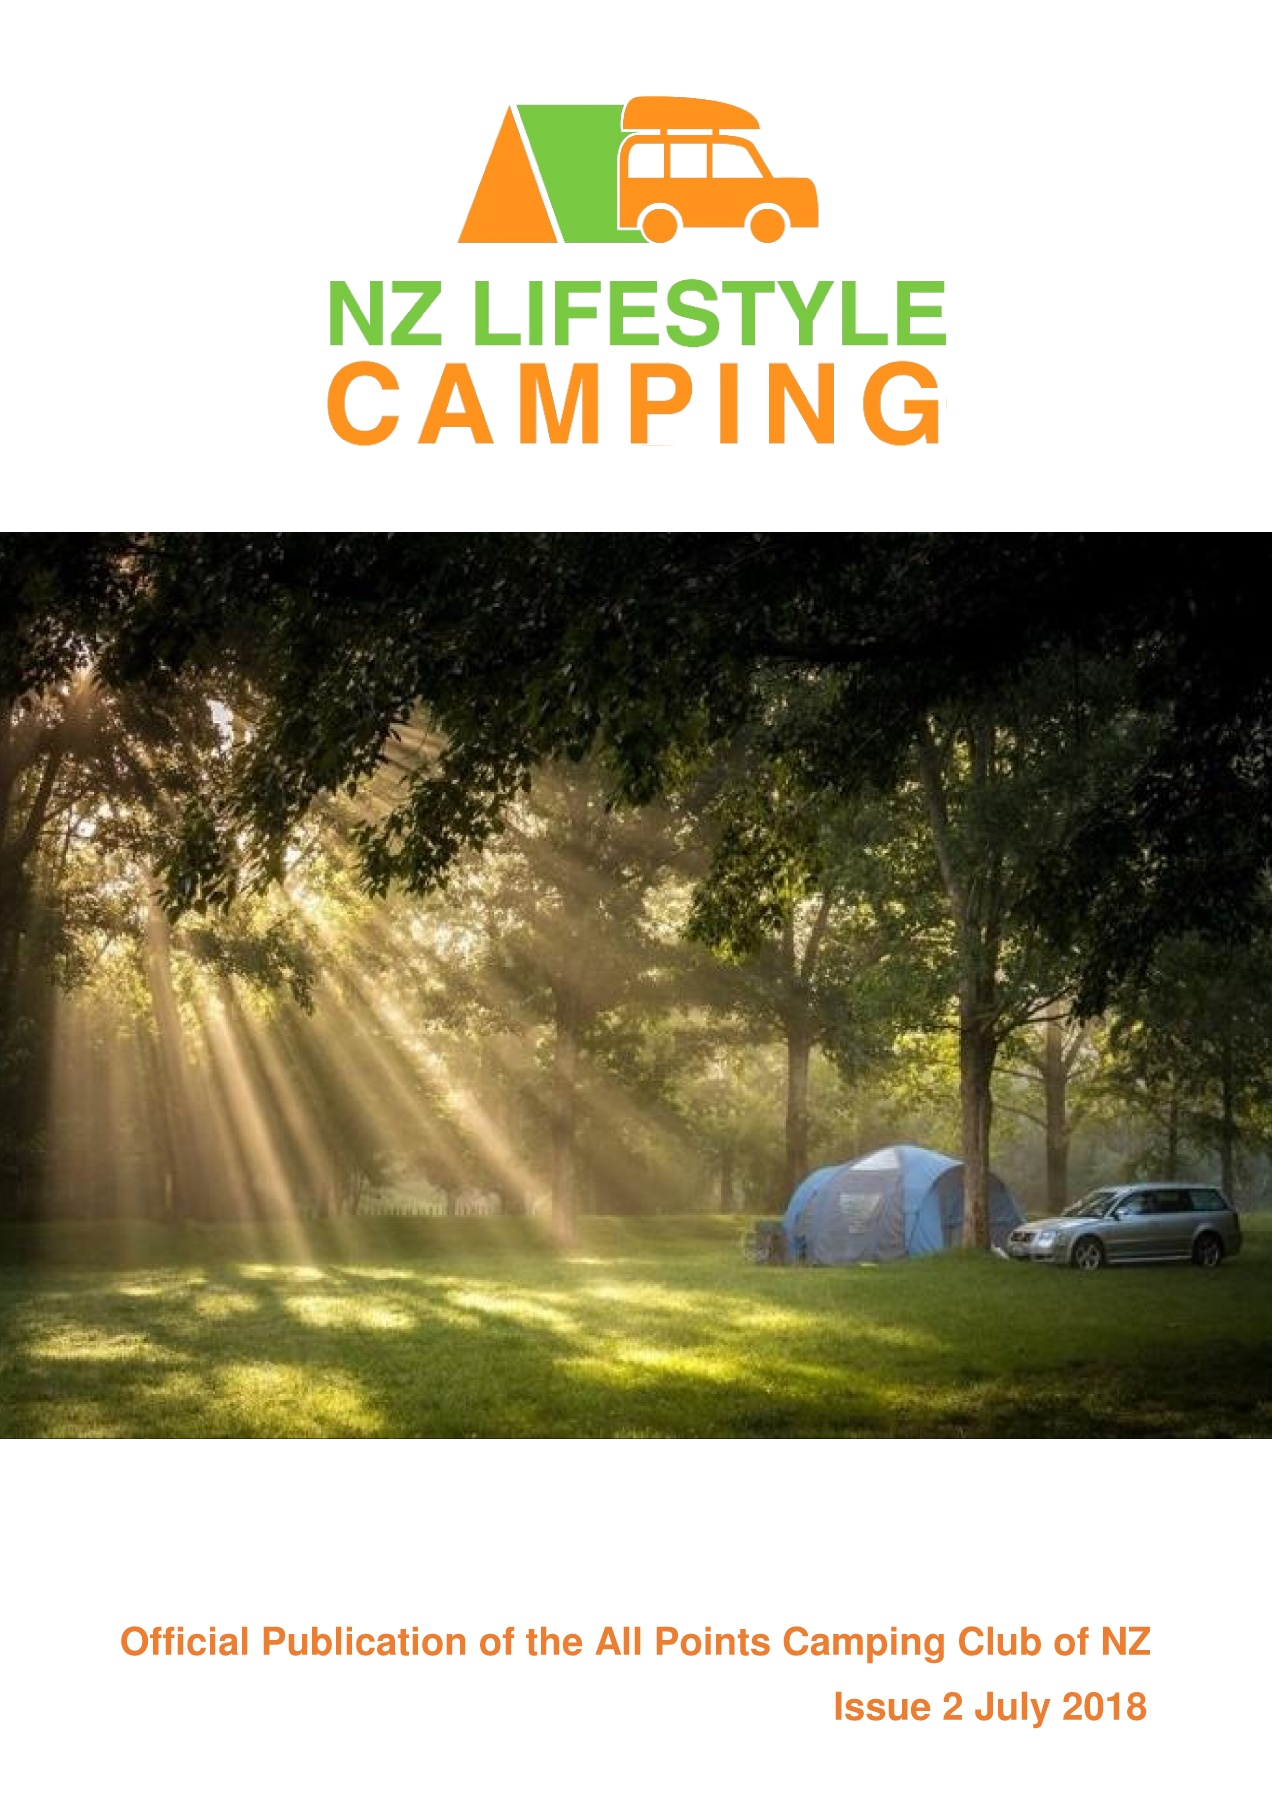 NZ Lifestyle Camping Issue 2 Winter 2018 Pages 1 - 23 - Text